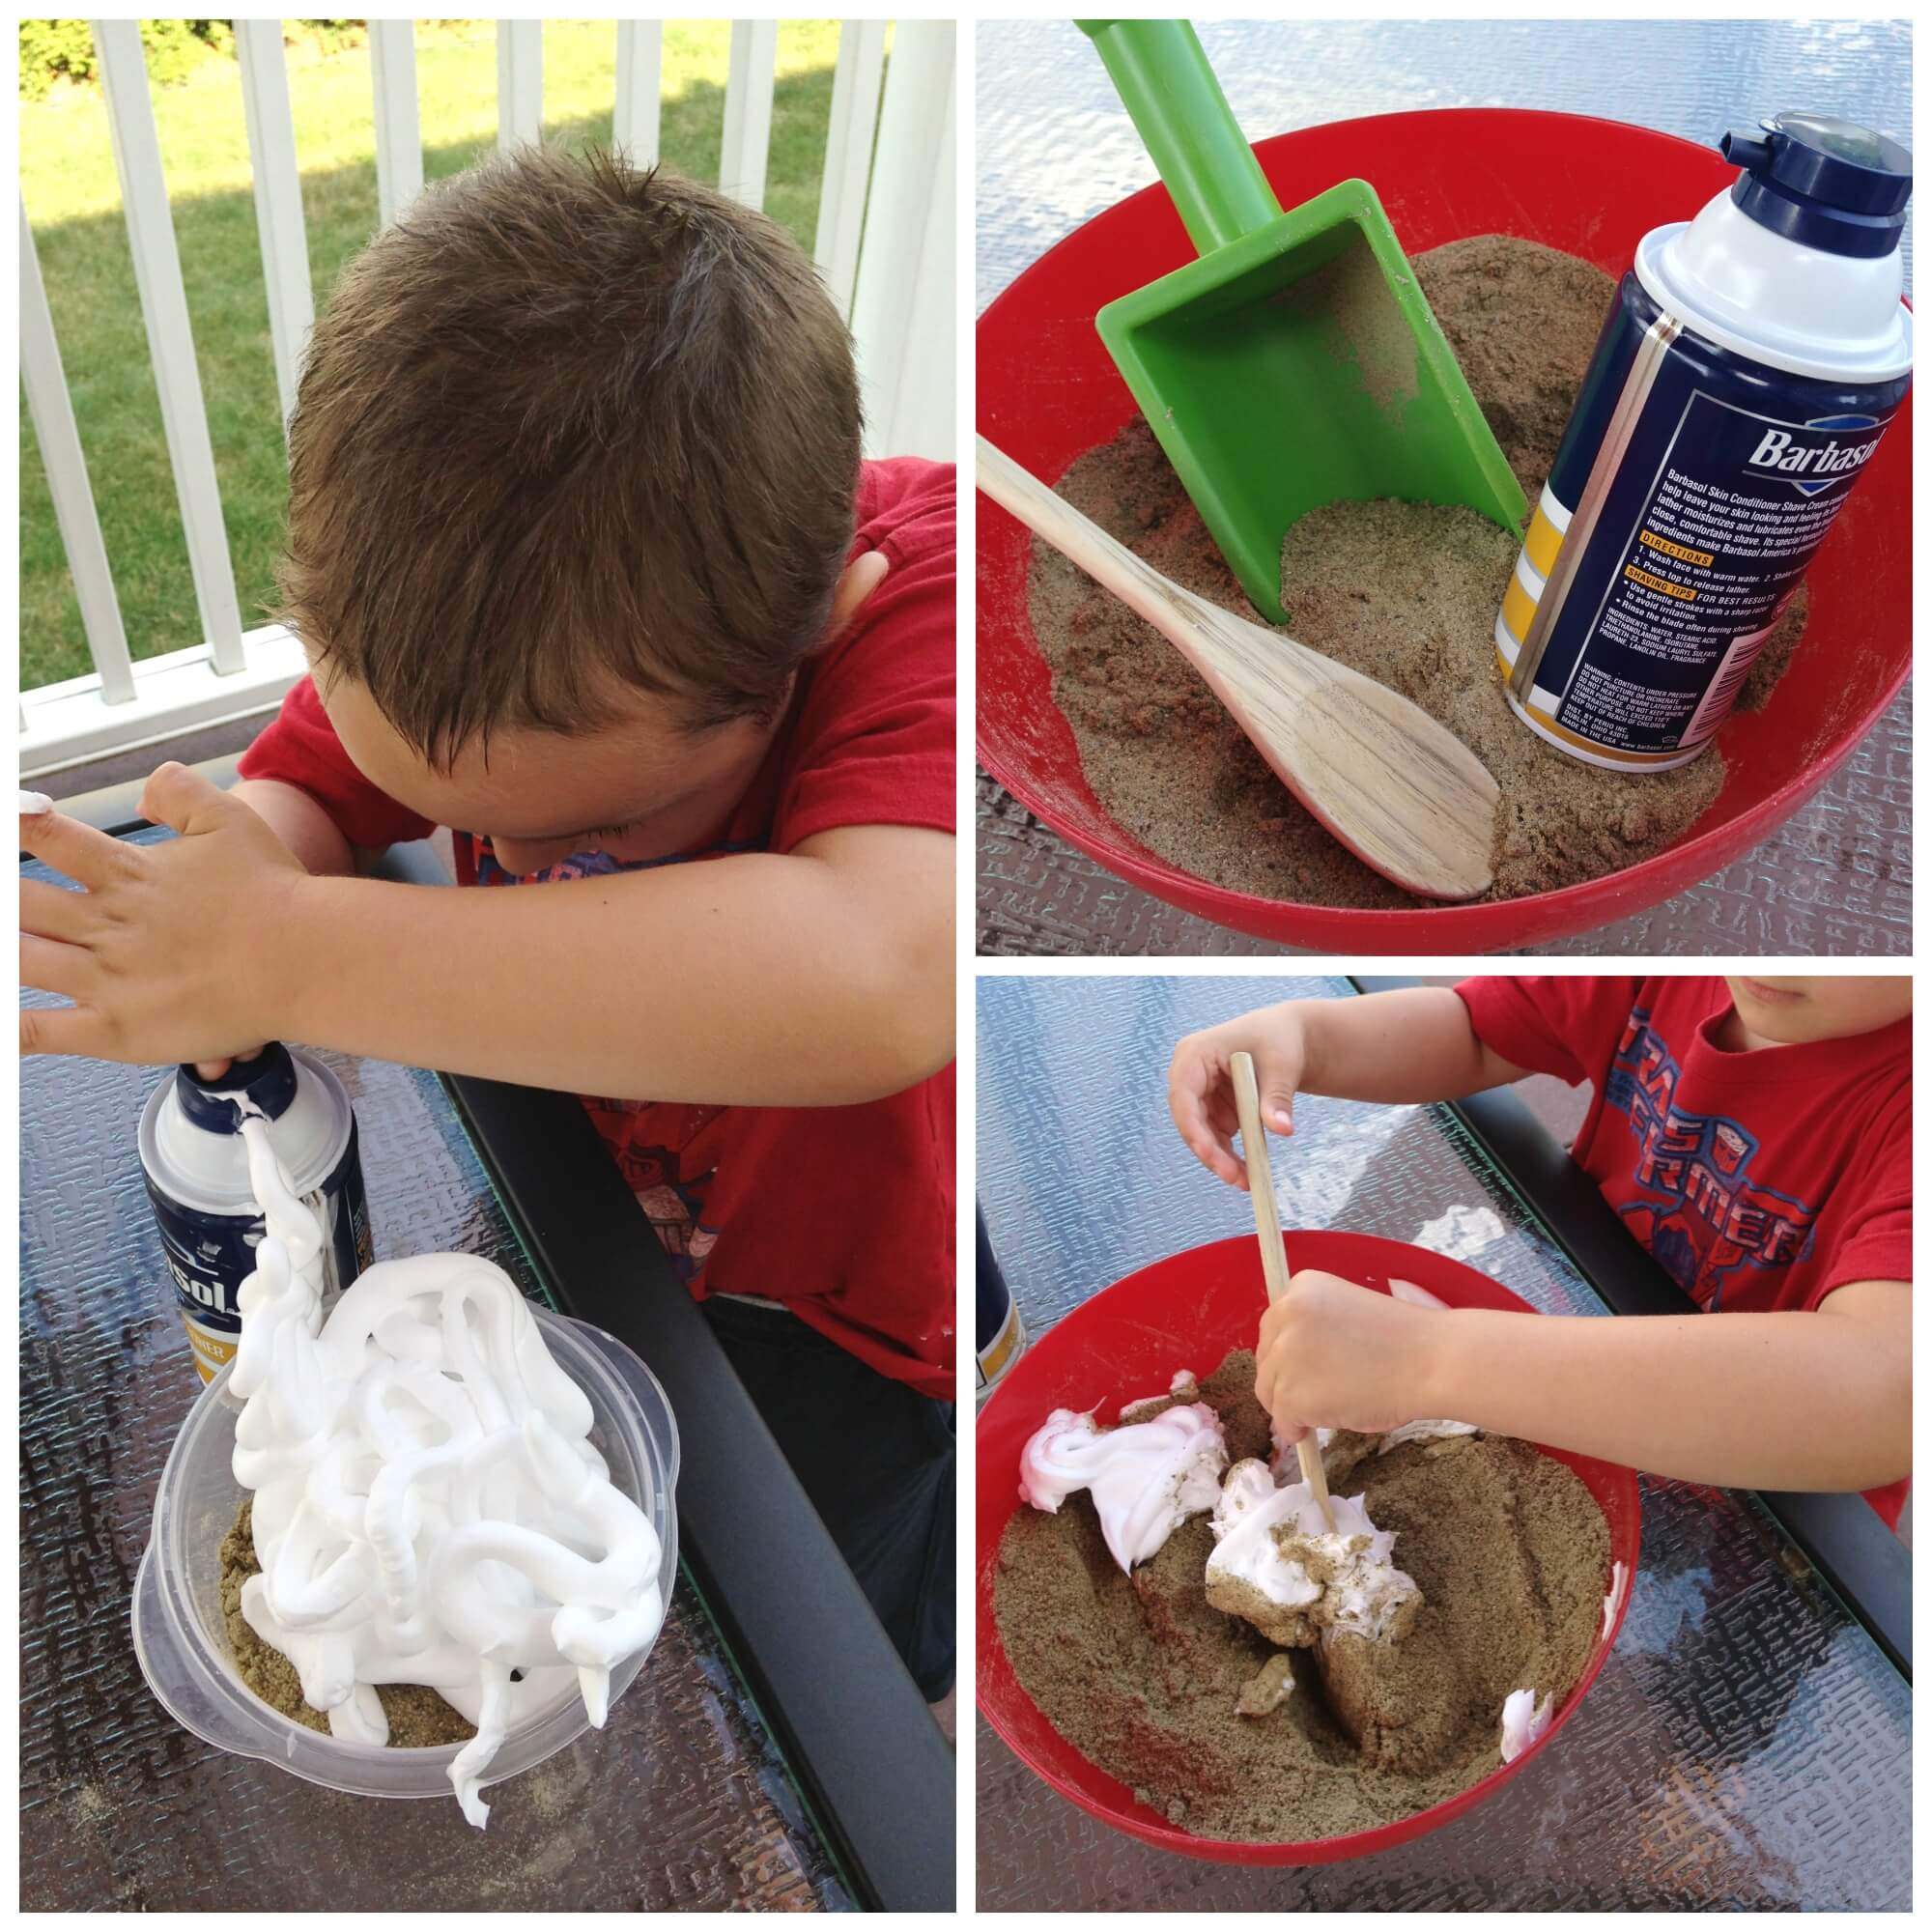 sensory and messy play Answers to commonly asked questions about sensory processing disorder skip links skip to primary navigation skip to content skip to primary sidebar sensory bins and messy play activities allow children to learn and explore through the sense of touch.